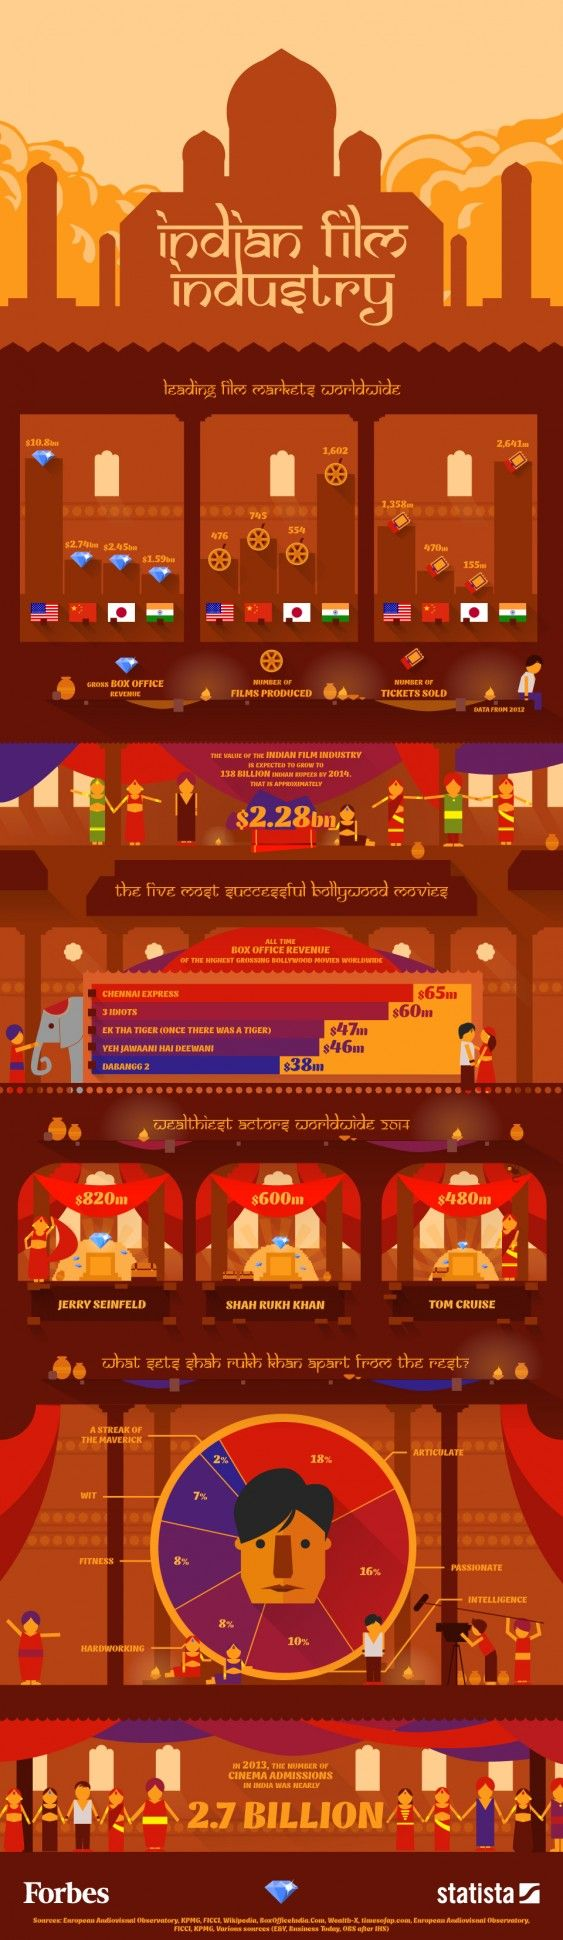 Bollywood: India's Film Industry By The Numbers [Infographic] - Forbes.